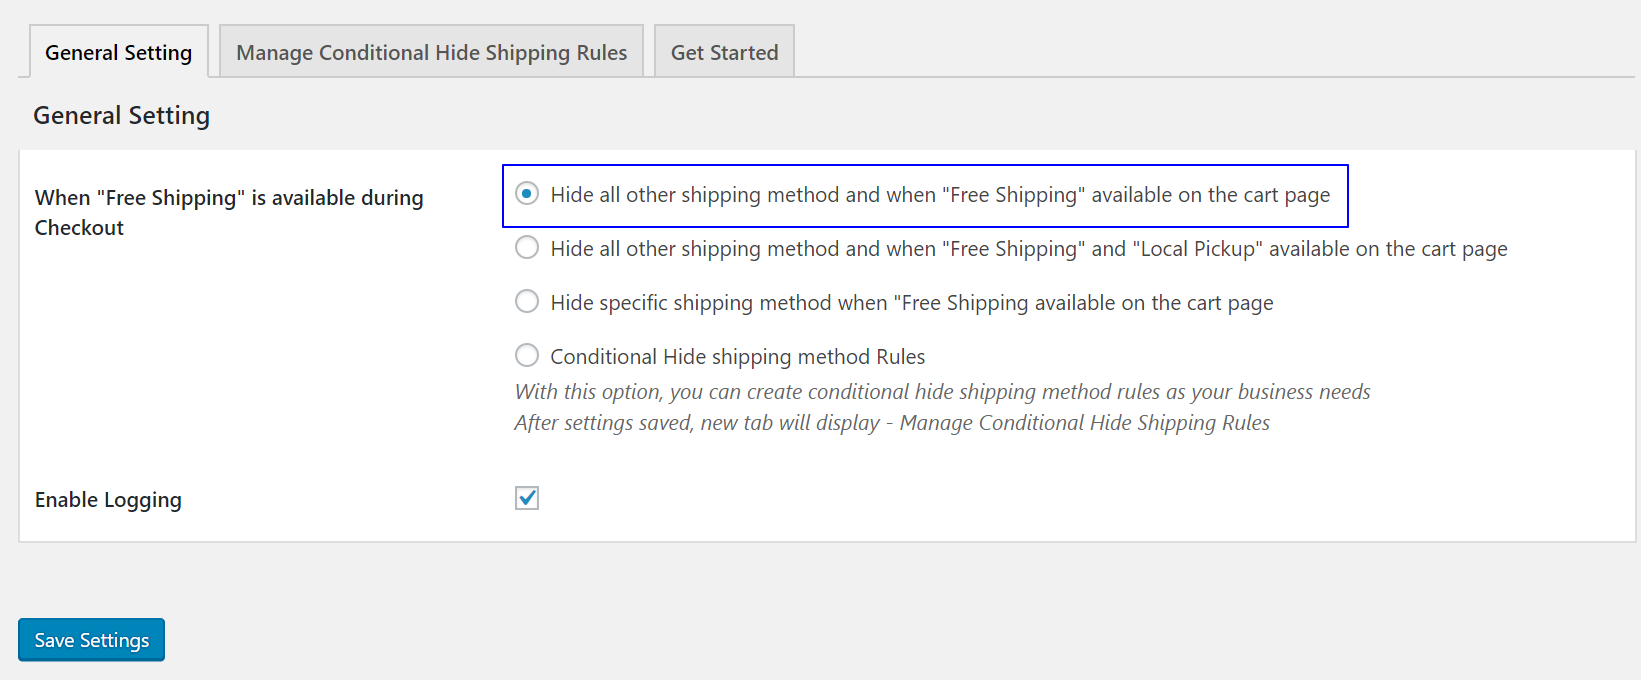 How to hide all other shipping methods when Free Shipping available on the cart page